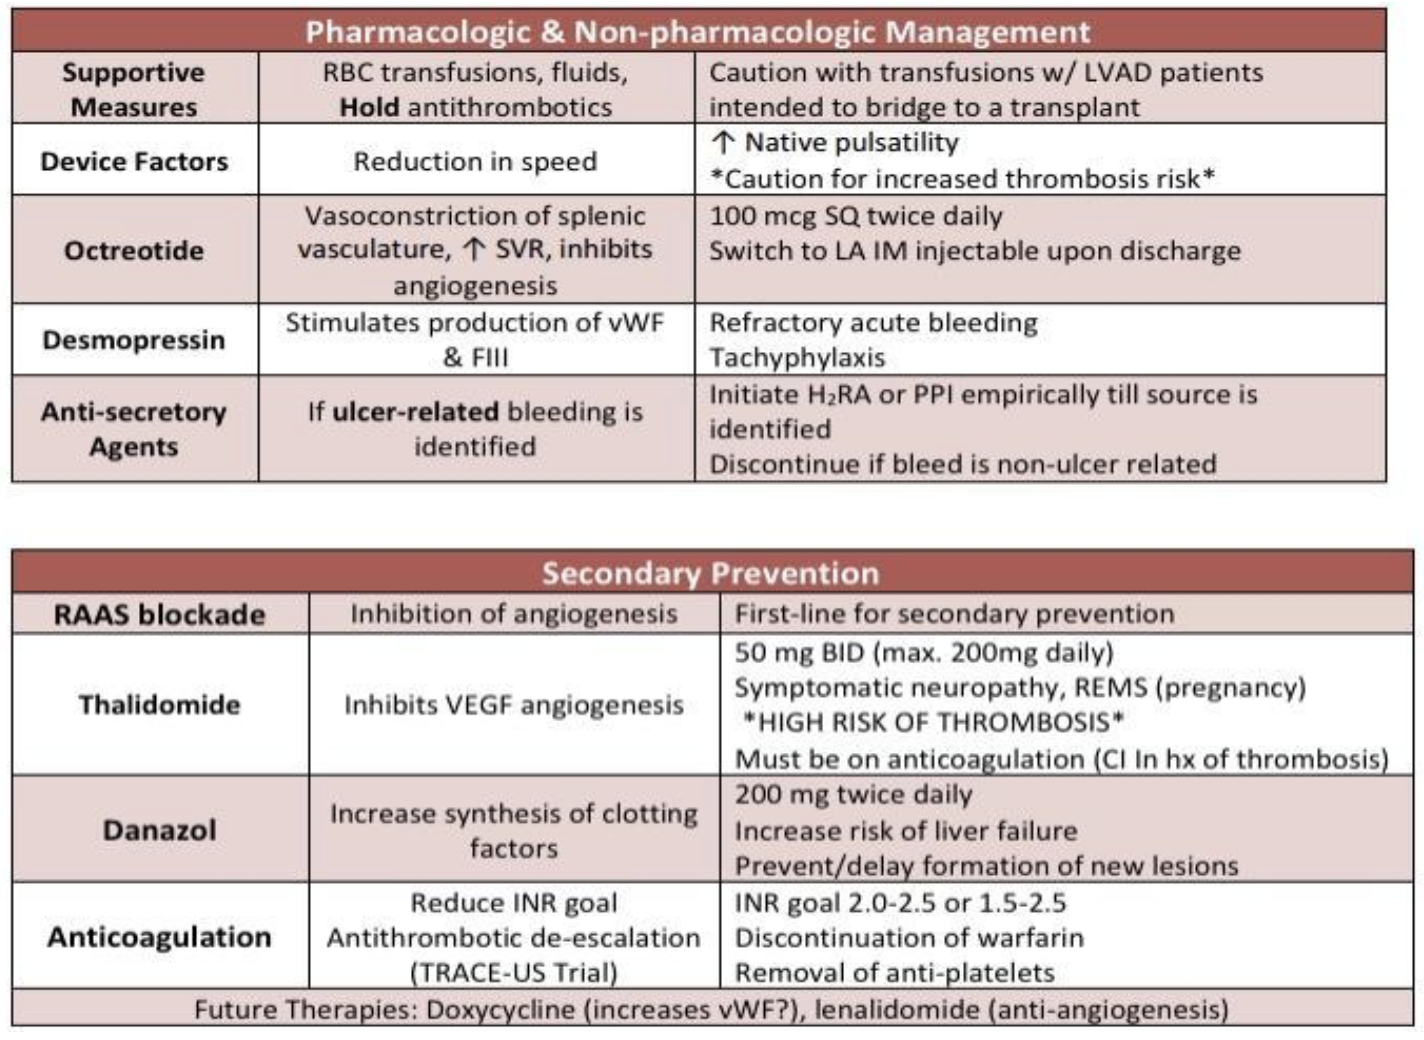 A summary of the management of acute bleeding and secondary prevention of bleeds in LVAD patients.